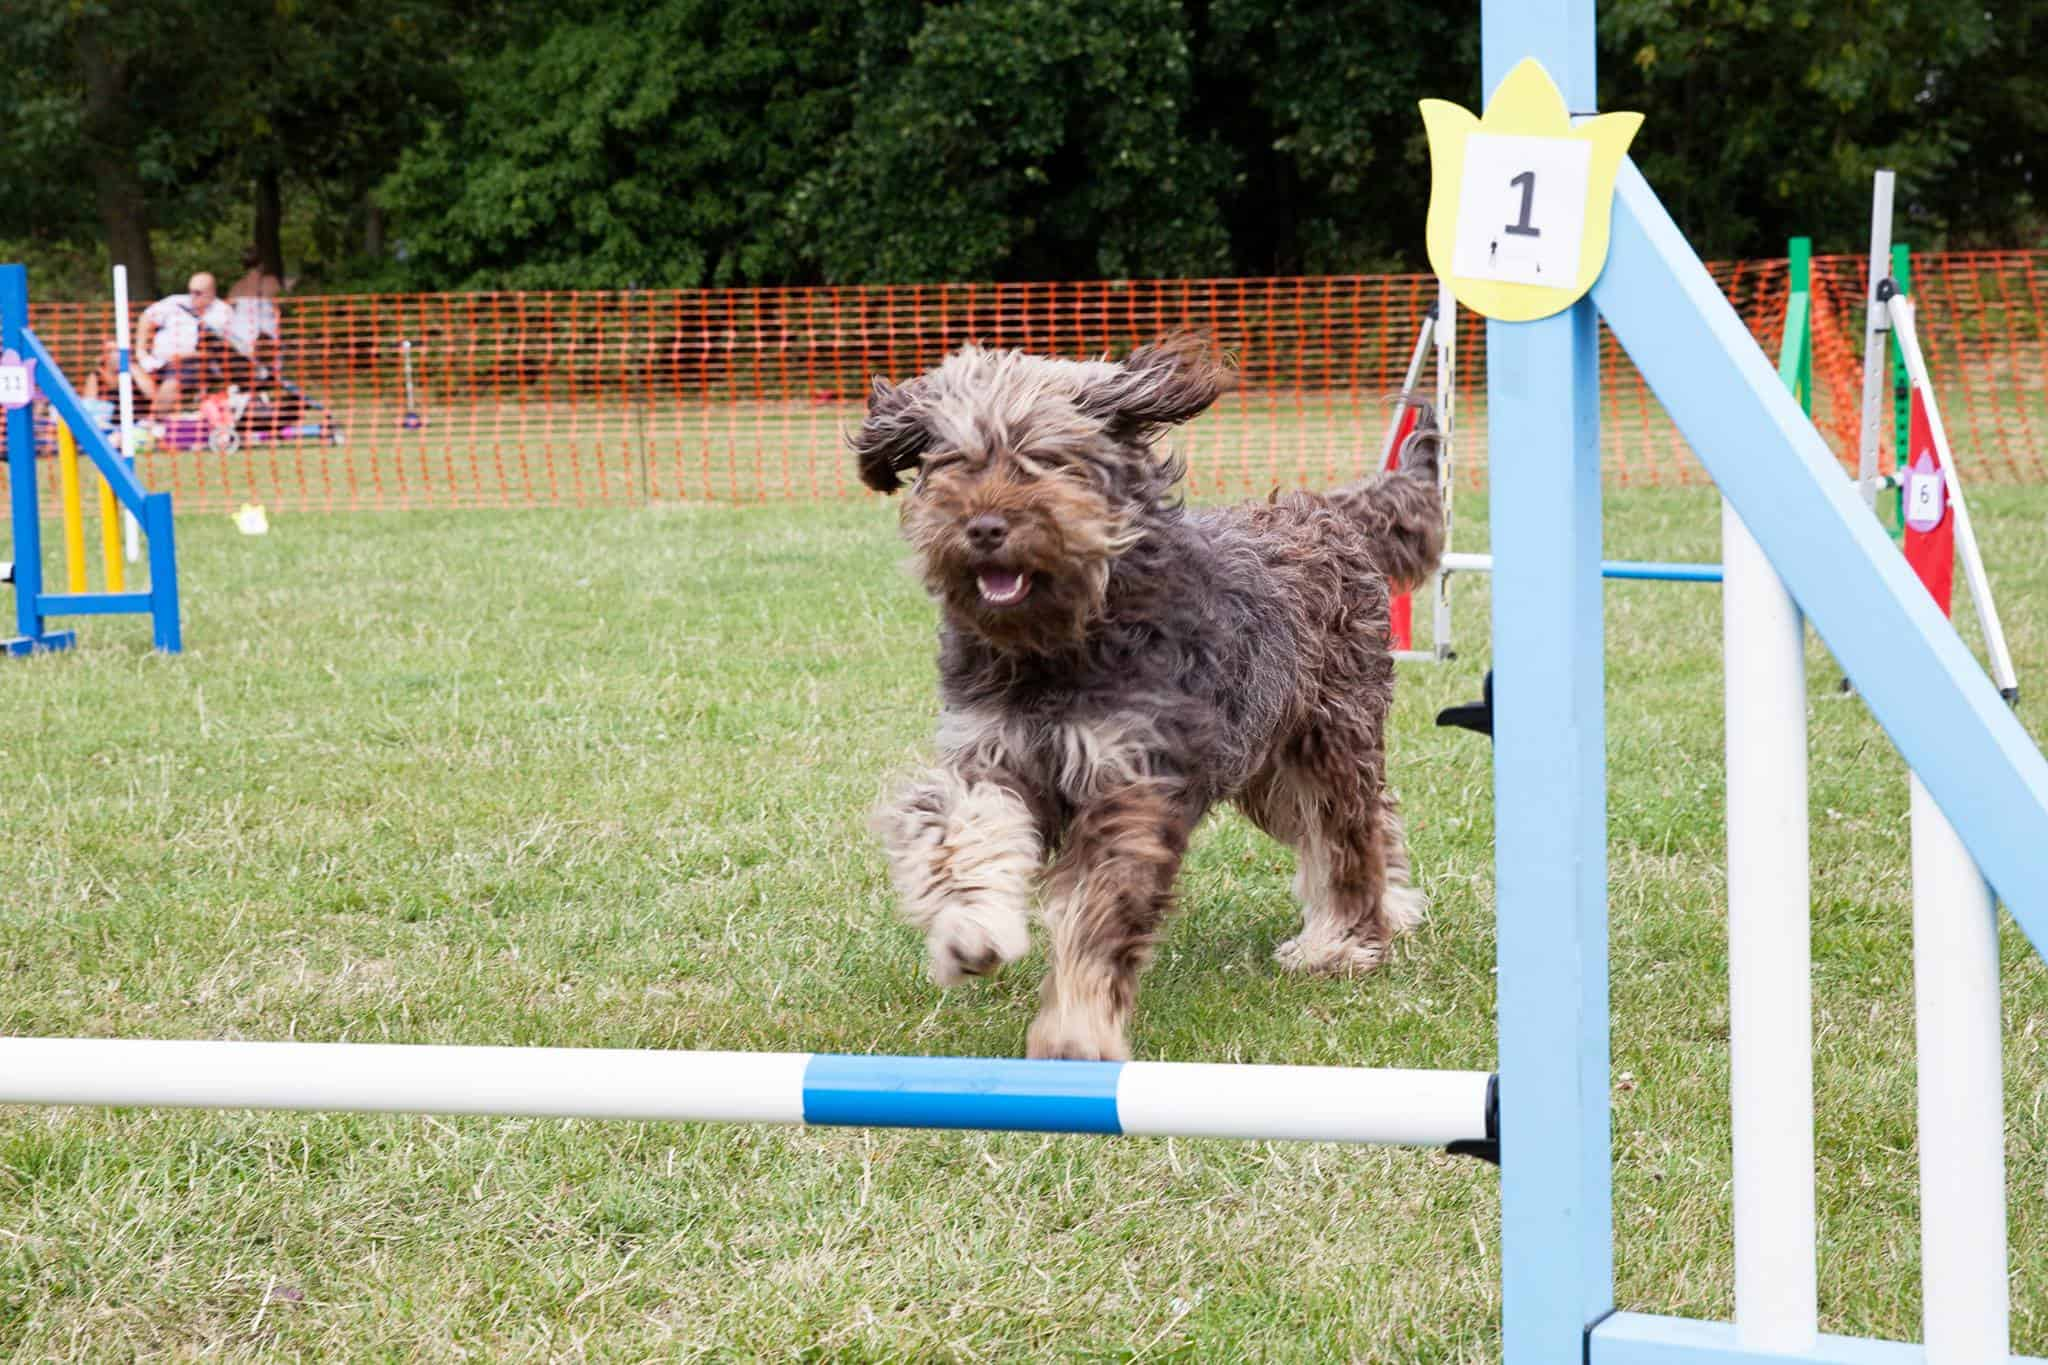 London Dog Show - Mavens Vet Dog Show | Morden Family Fun Day - London Dog Events